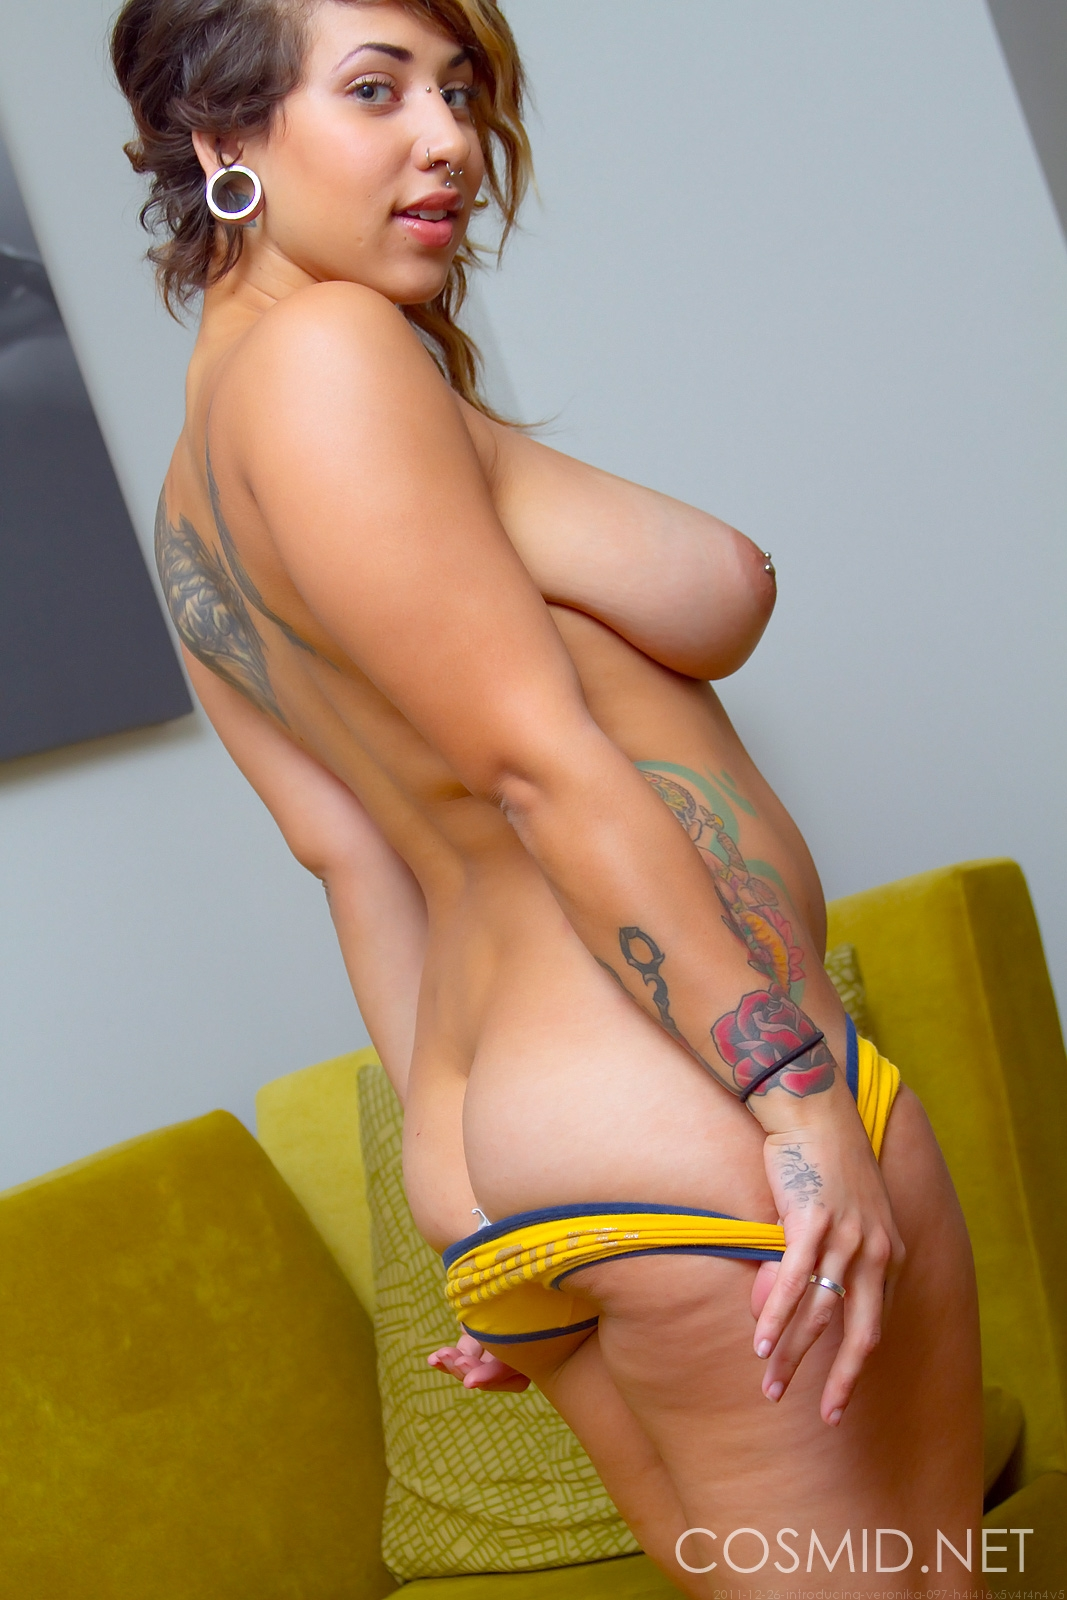 hottystop veronika curvy punk girl 9